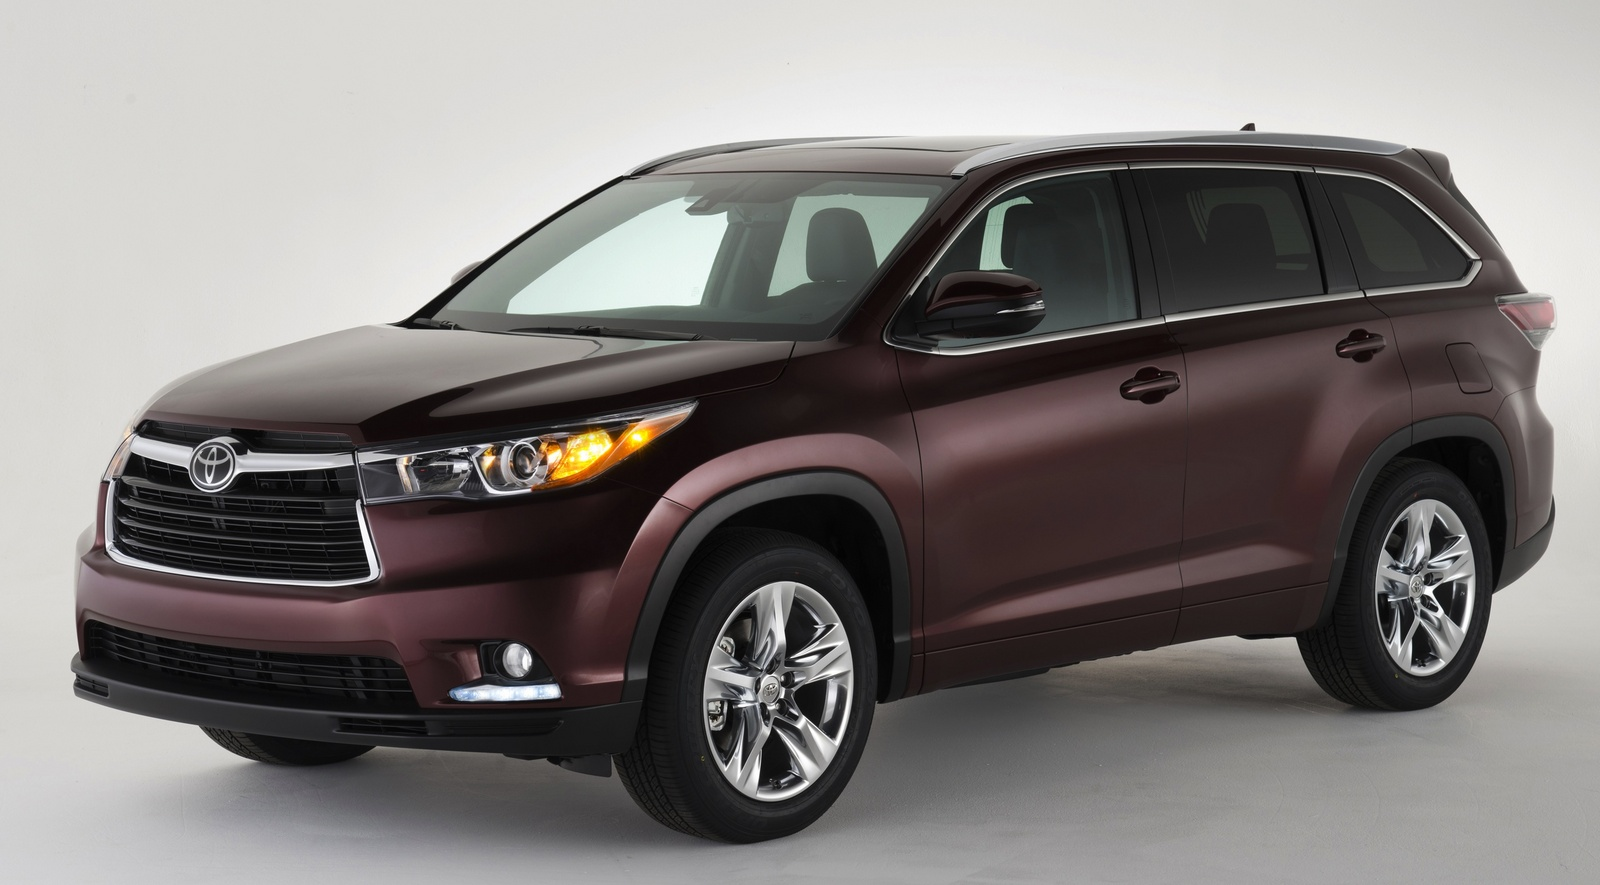 New 2014 / 2015 Toyota Highlander For Sale Cincinnati, OH - CarGurus